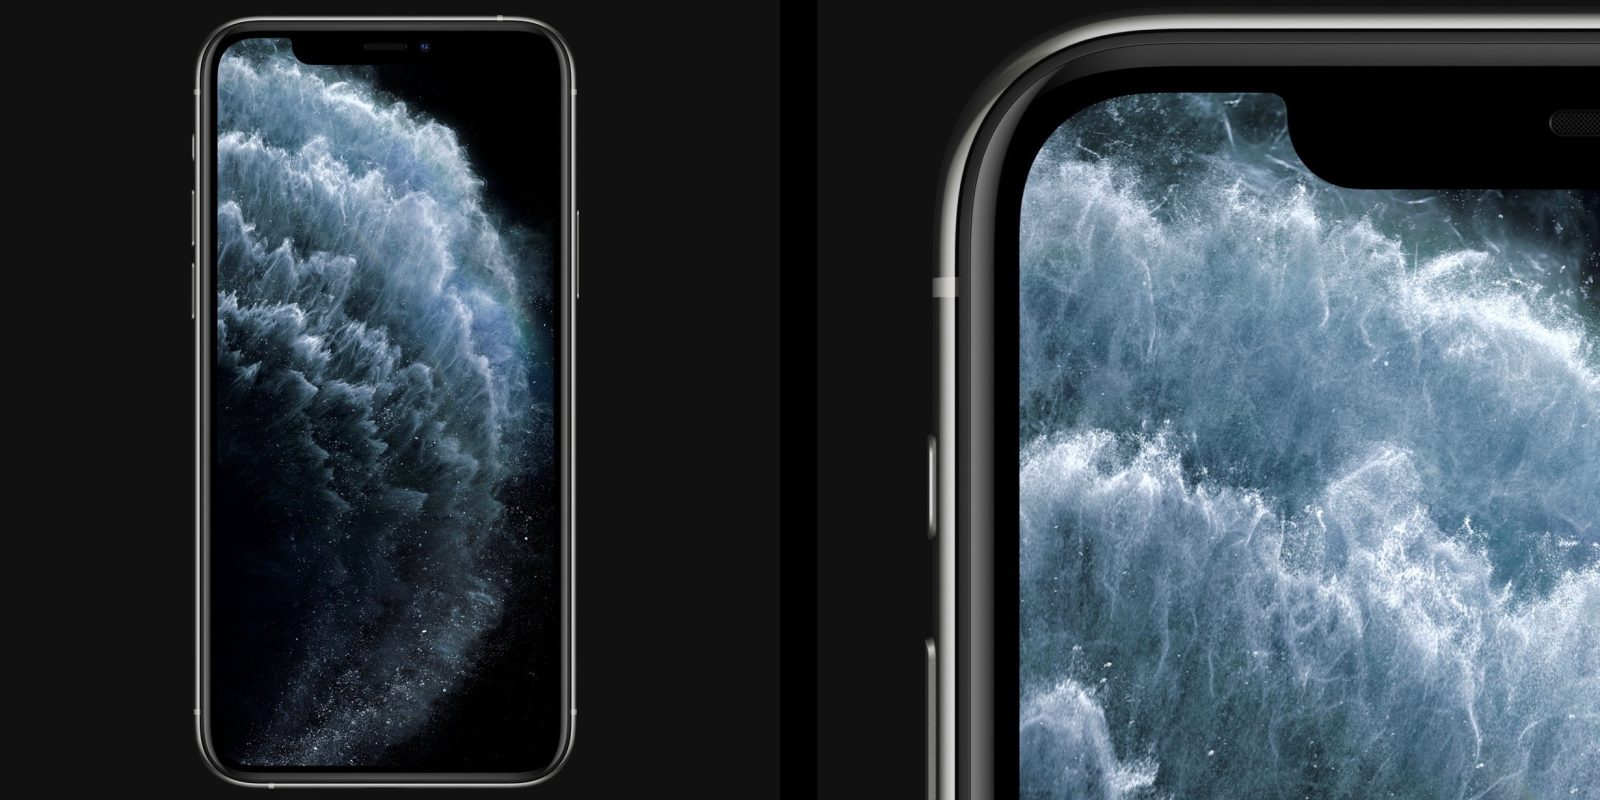 Iphone 11 Pro Super Retina Xdr Display Rated Best Smartphone Screen With Highest Ever A Rating From Displaymate 9to5mac